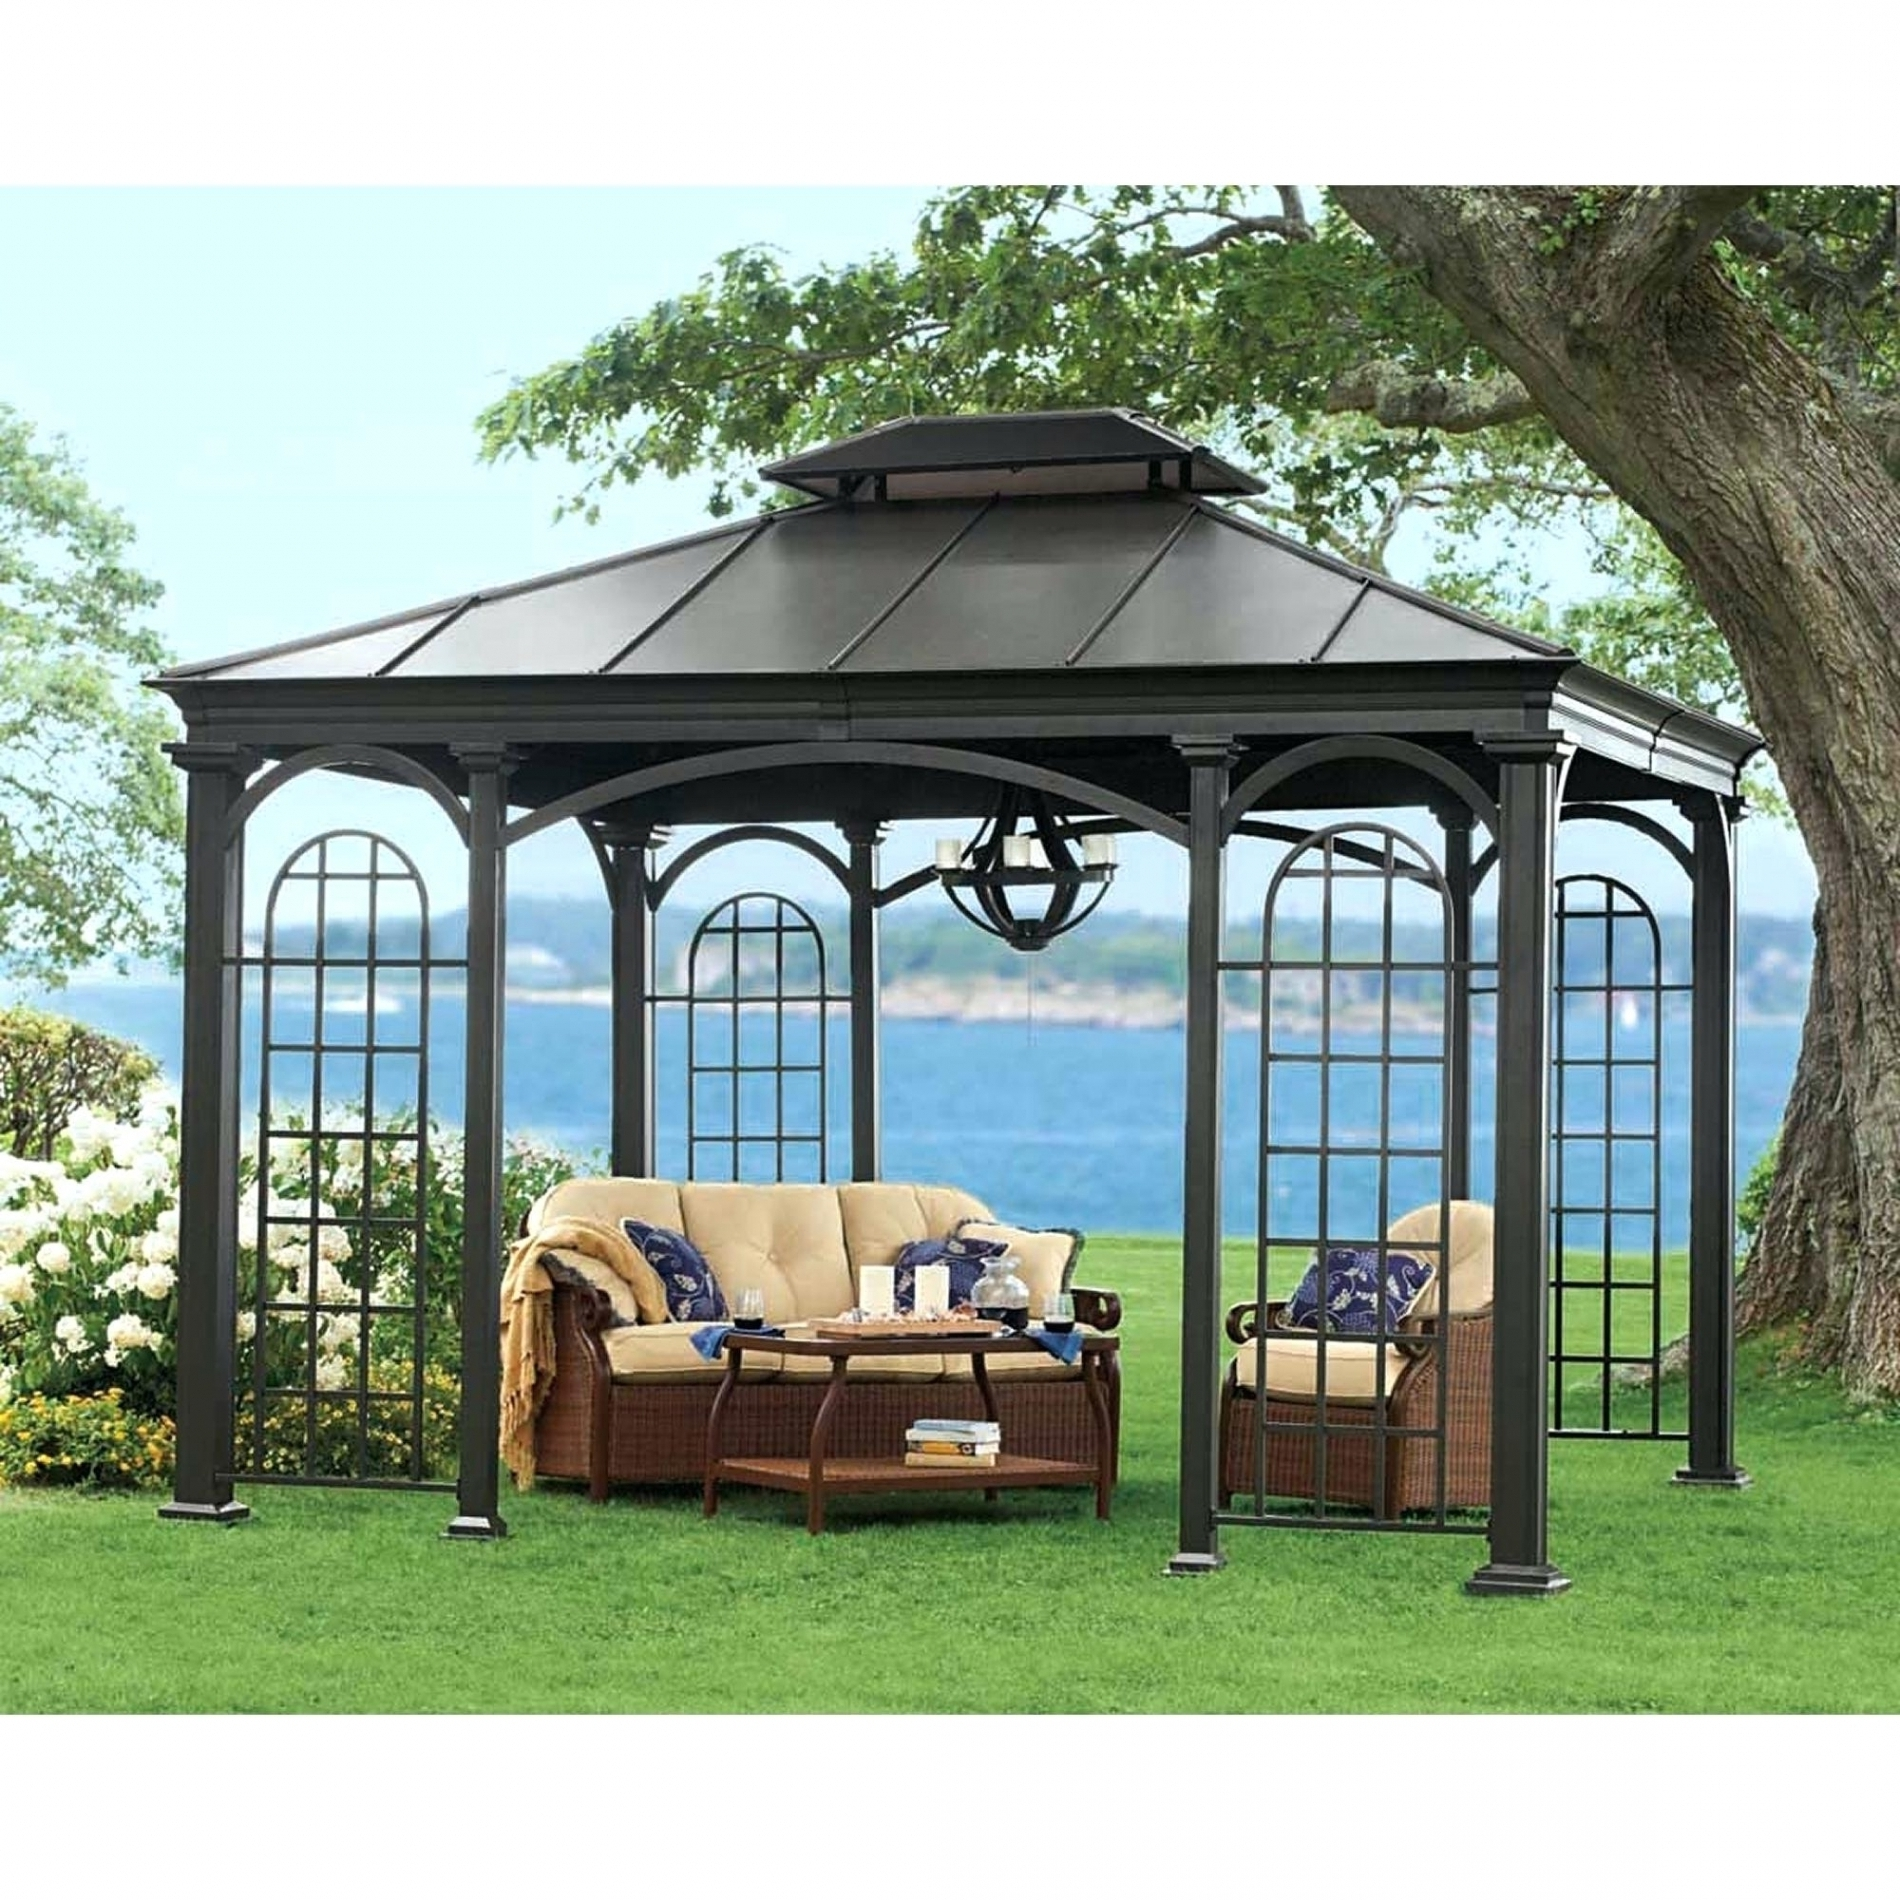 Widely Used Rona Patio Rocking Chairs With Gazebo Rona Hardtop Gazebos For Ontario Clearance Throughout Patio (View 19 of 20)